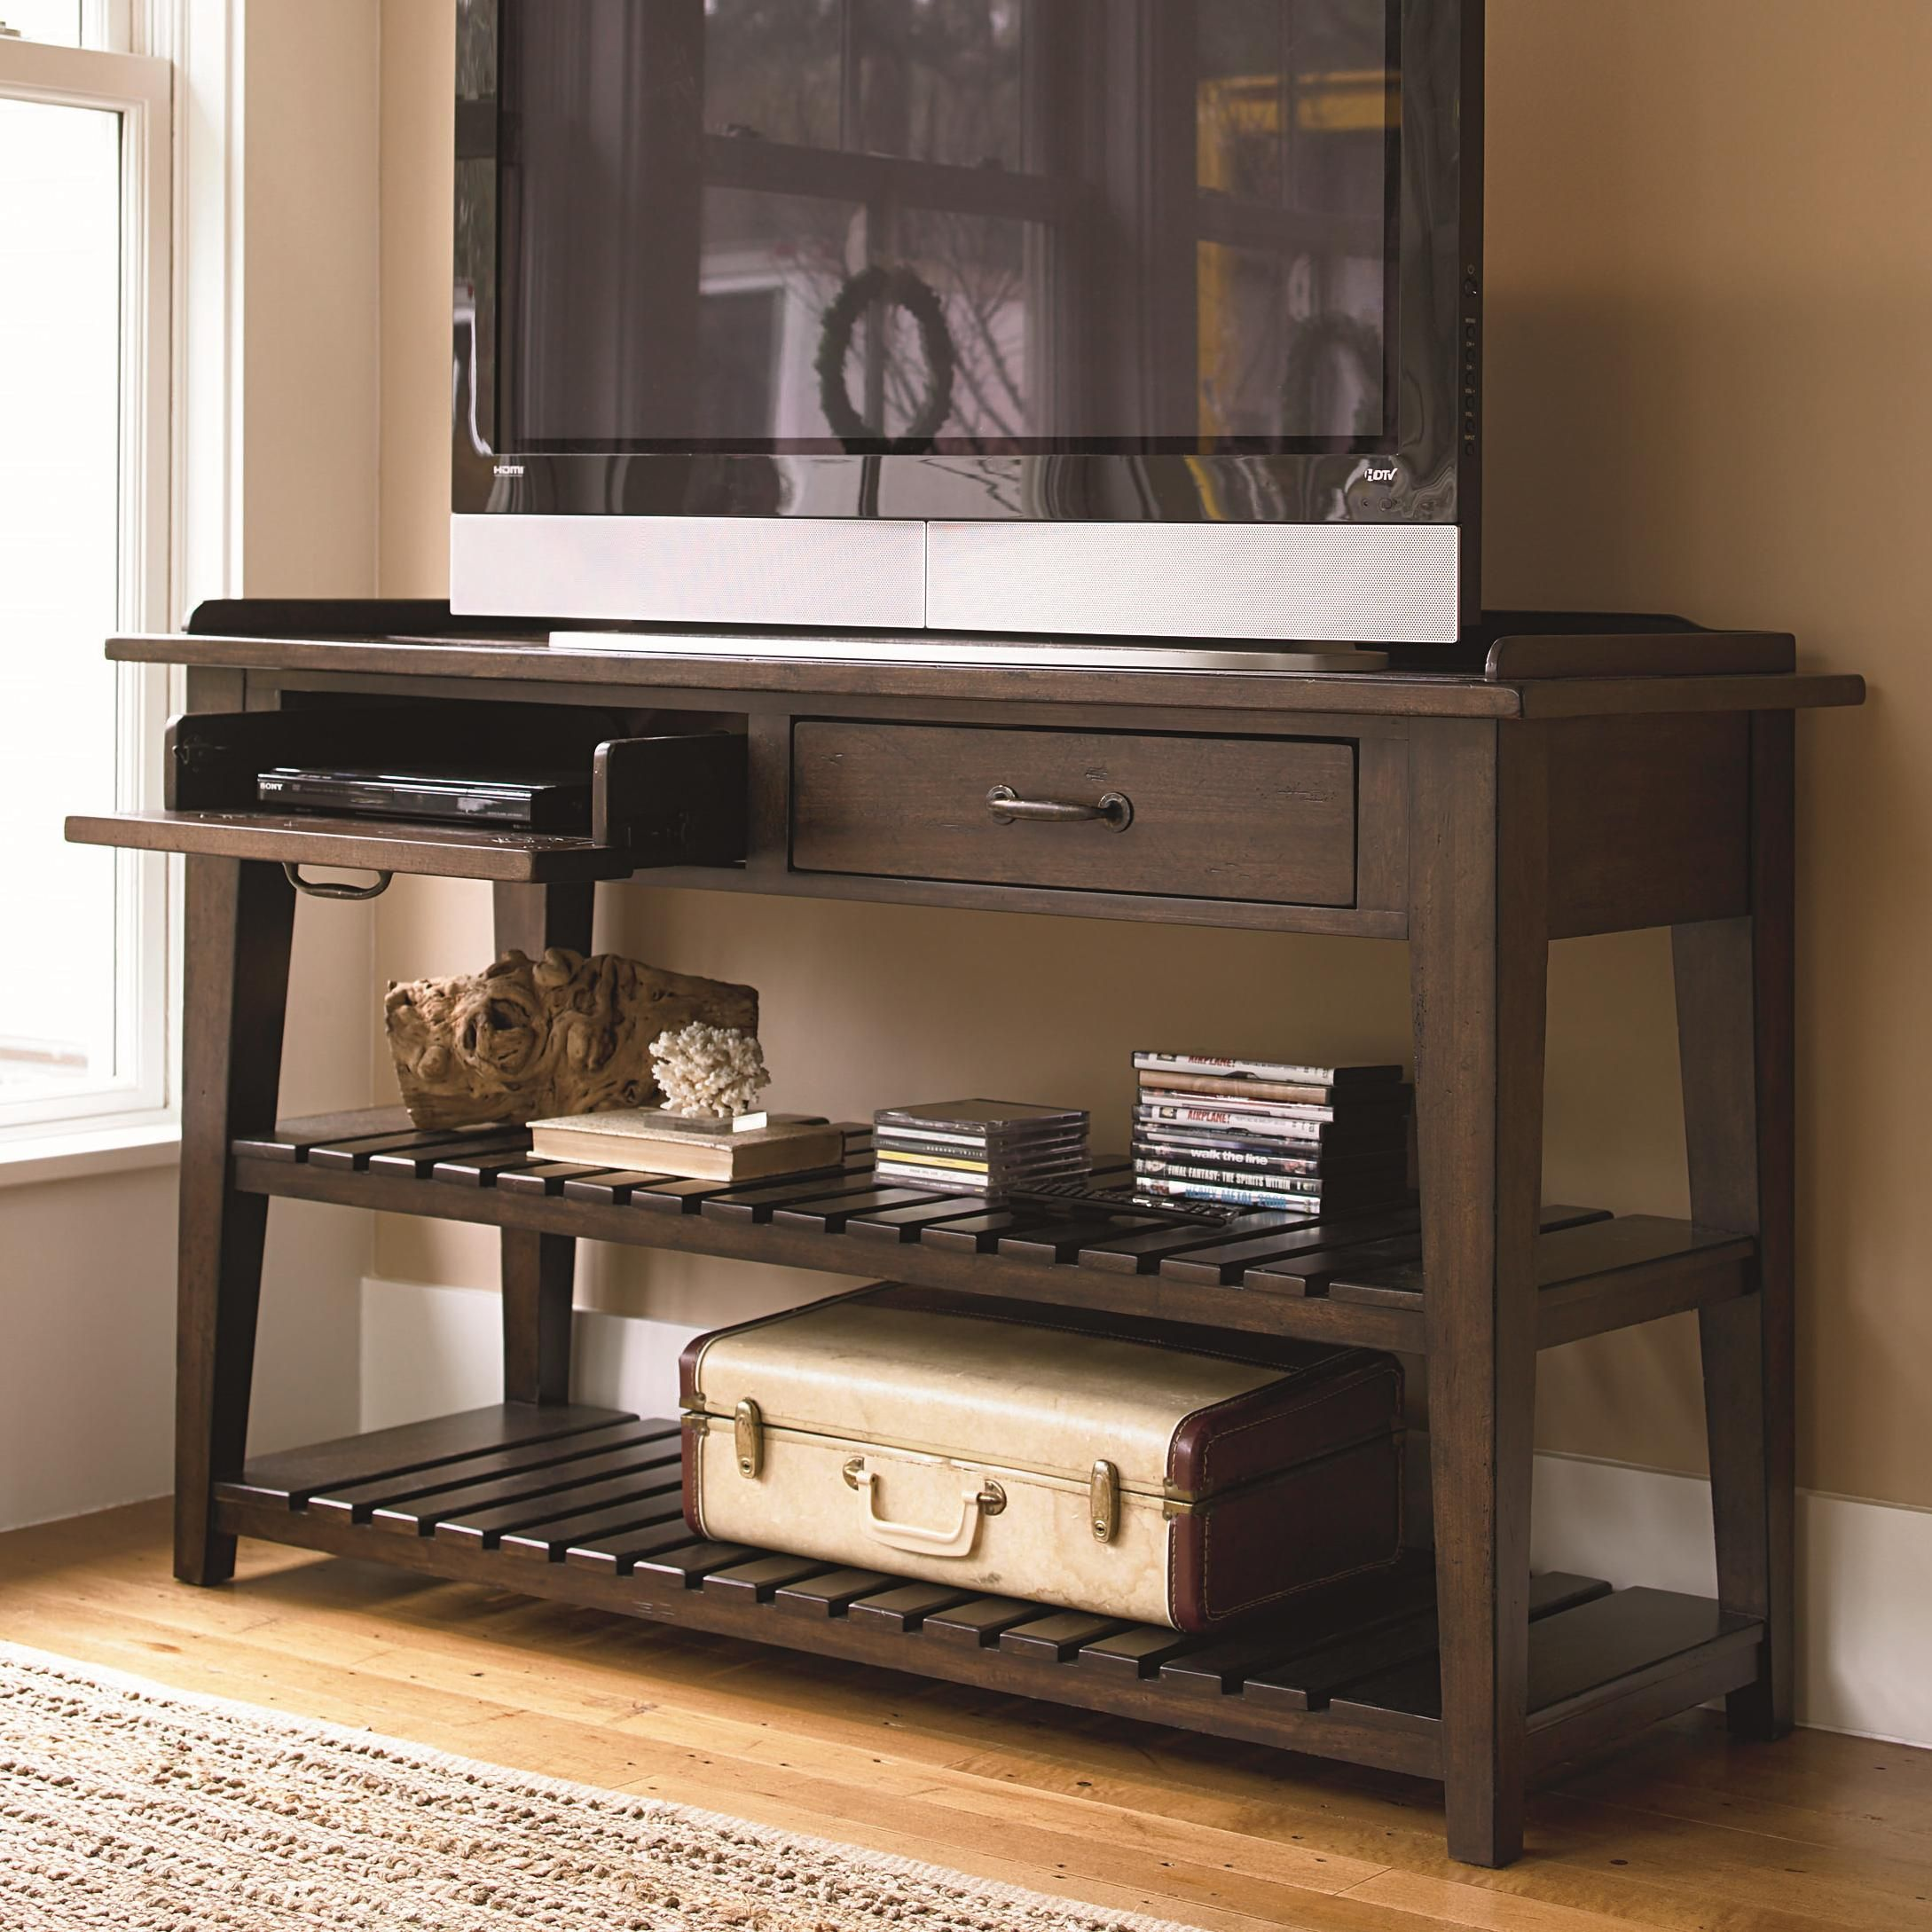 Down Home TV Console Serving Table by Paula Deen by Universal   Down Home TV Console Serving Table by Paula Deen by Universal   Reeds  Furniture. Console Table In Living Room. Home Design Ideas